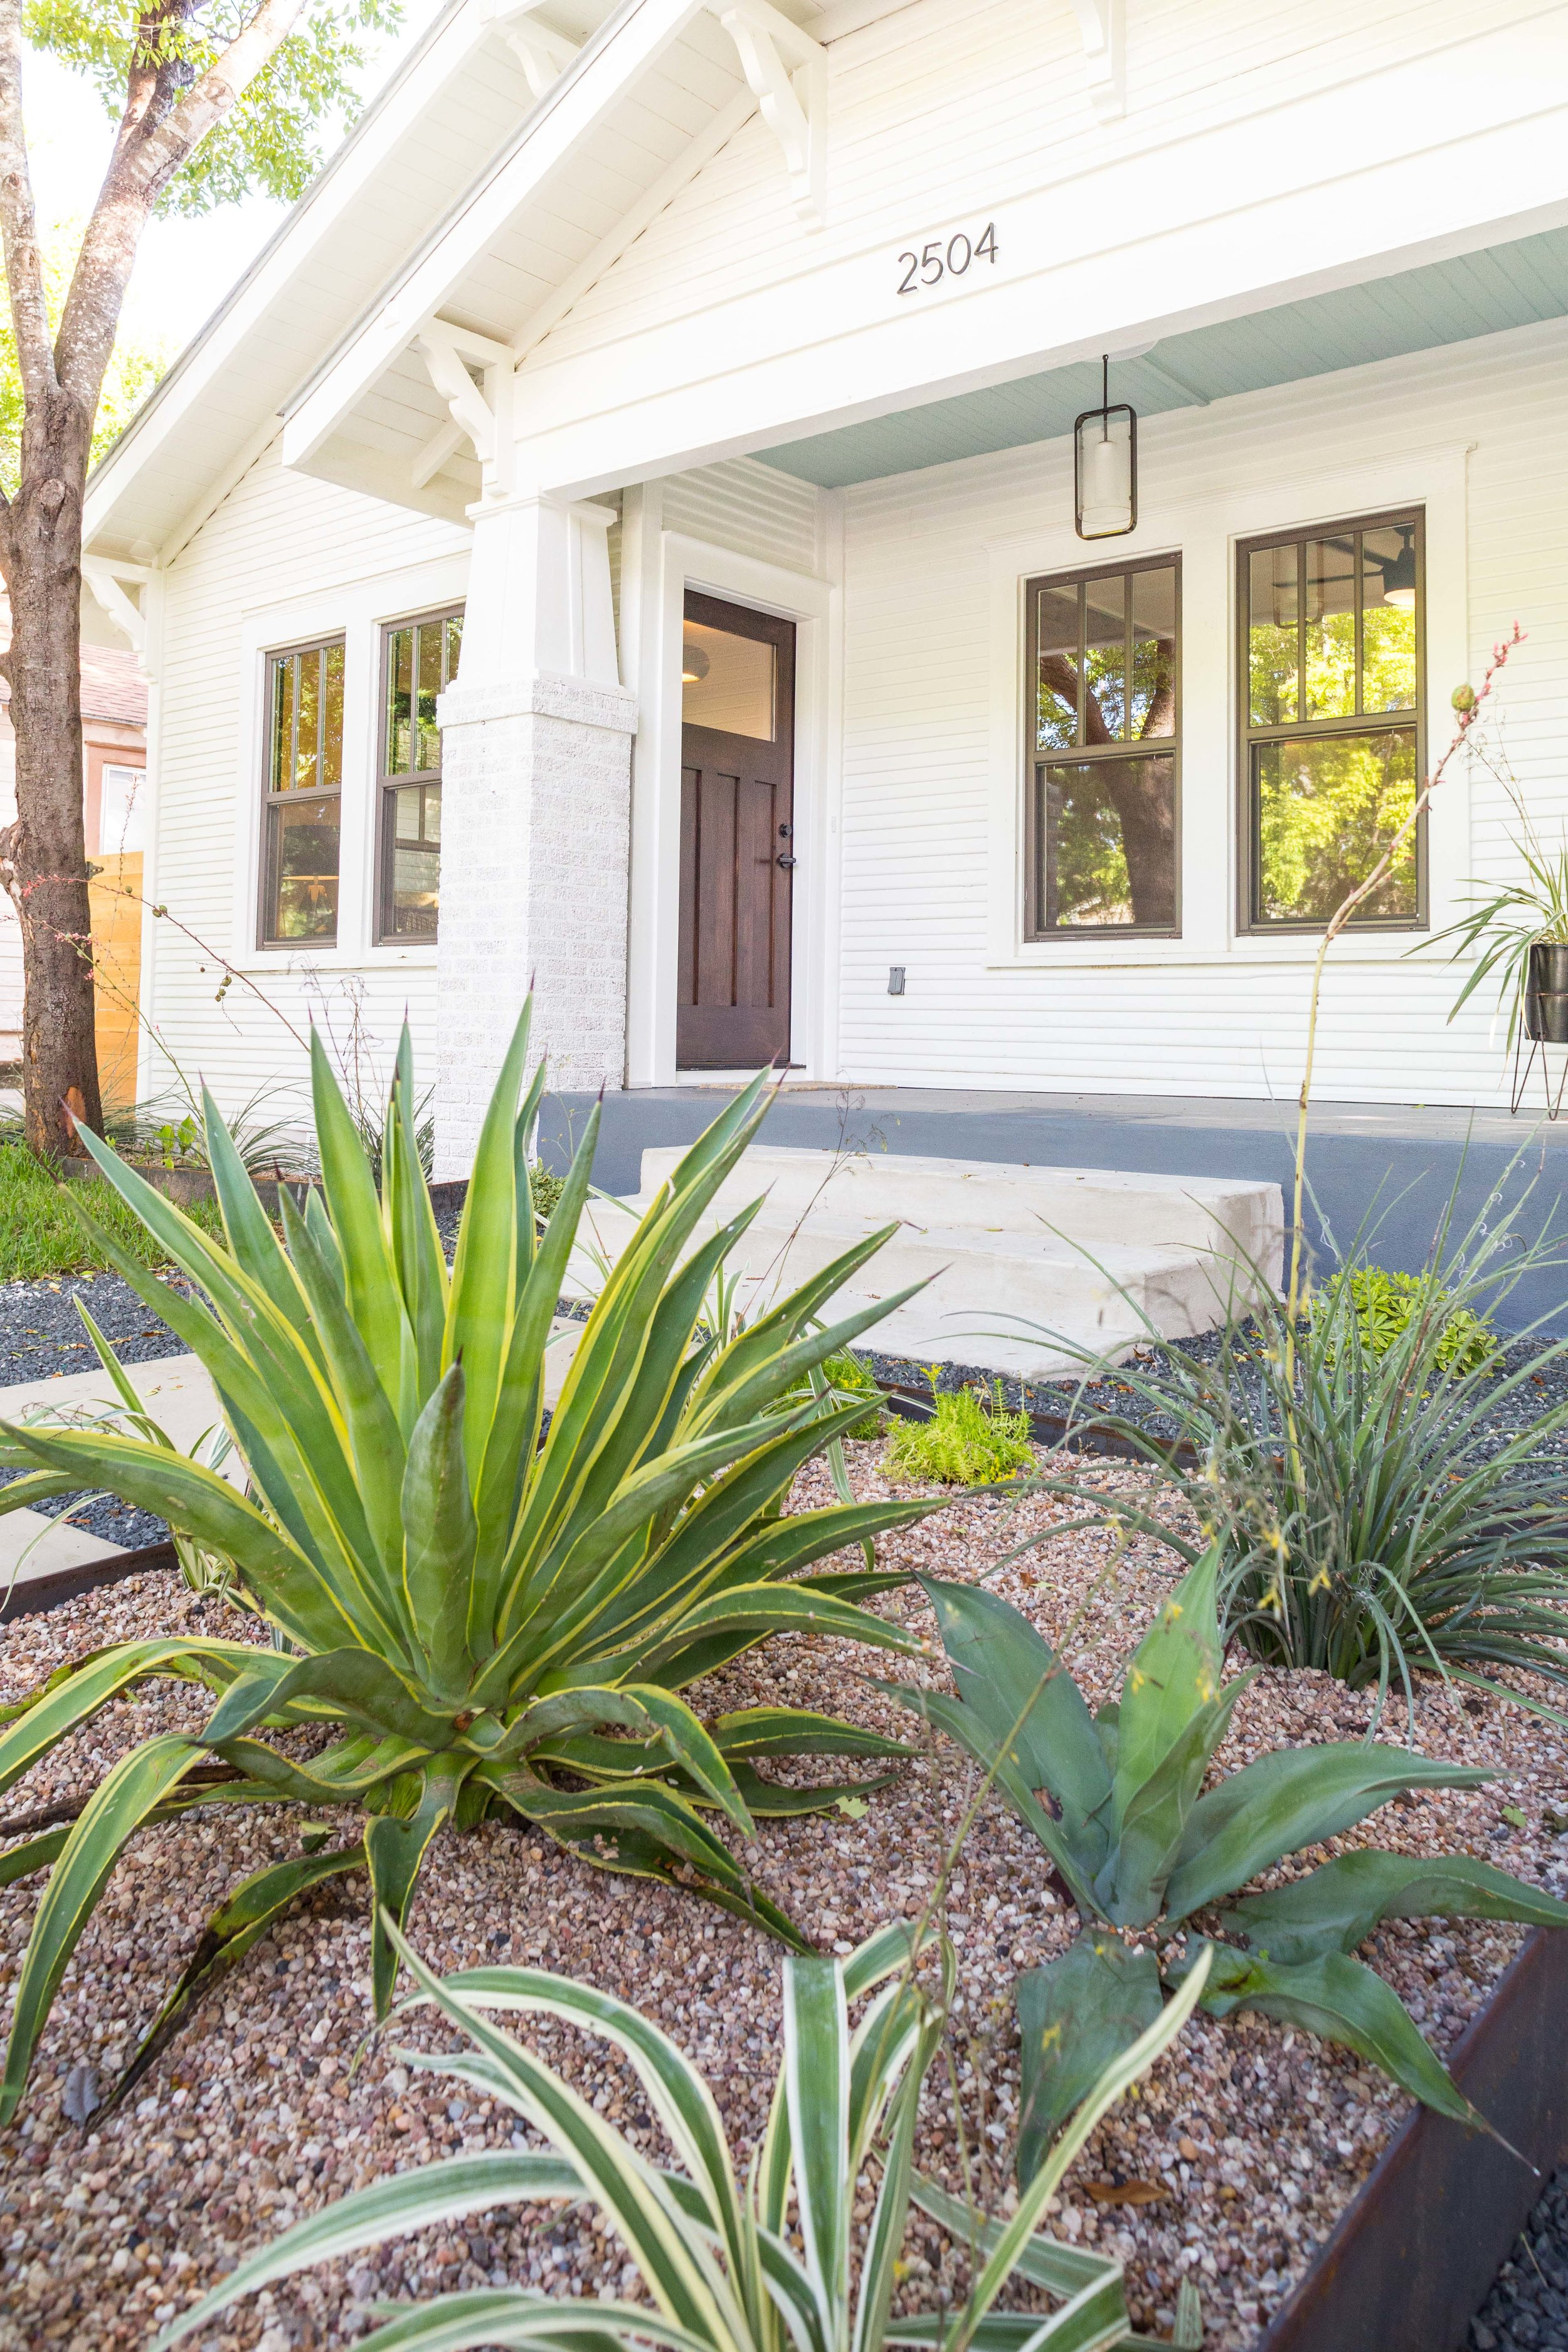 2504_WillowA_-_East_Austin_Bungalow_with_Modern_Addition_-_Holly_neighborhood-9760[1].jpg